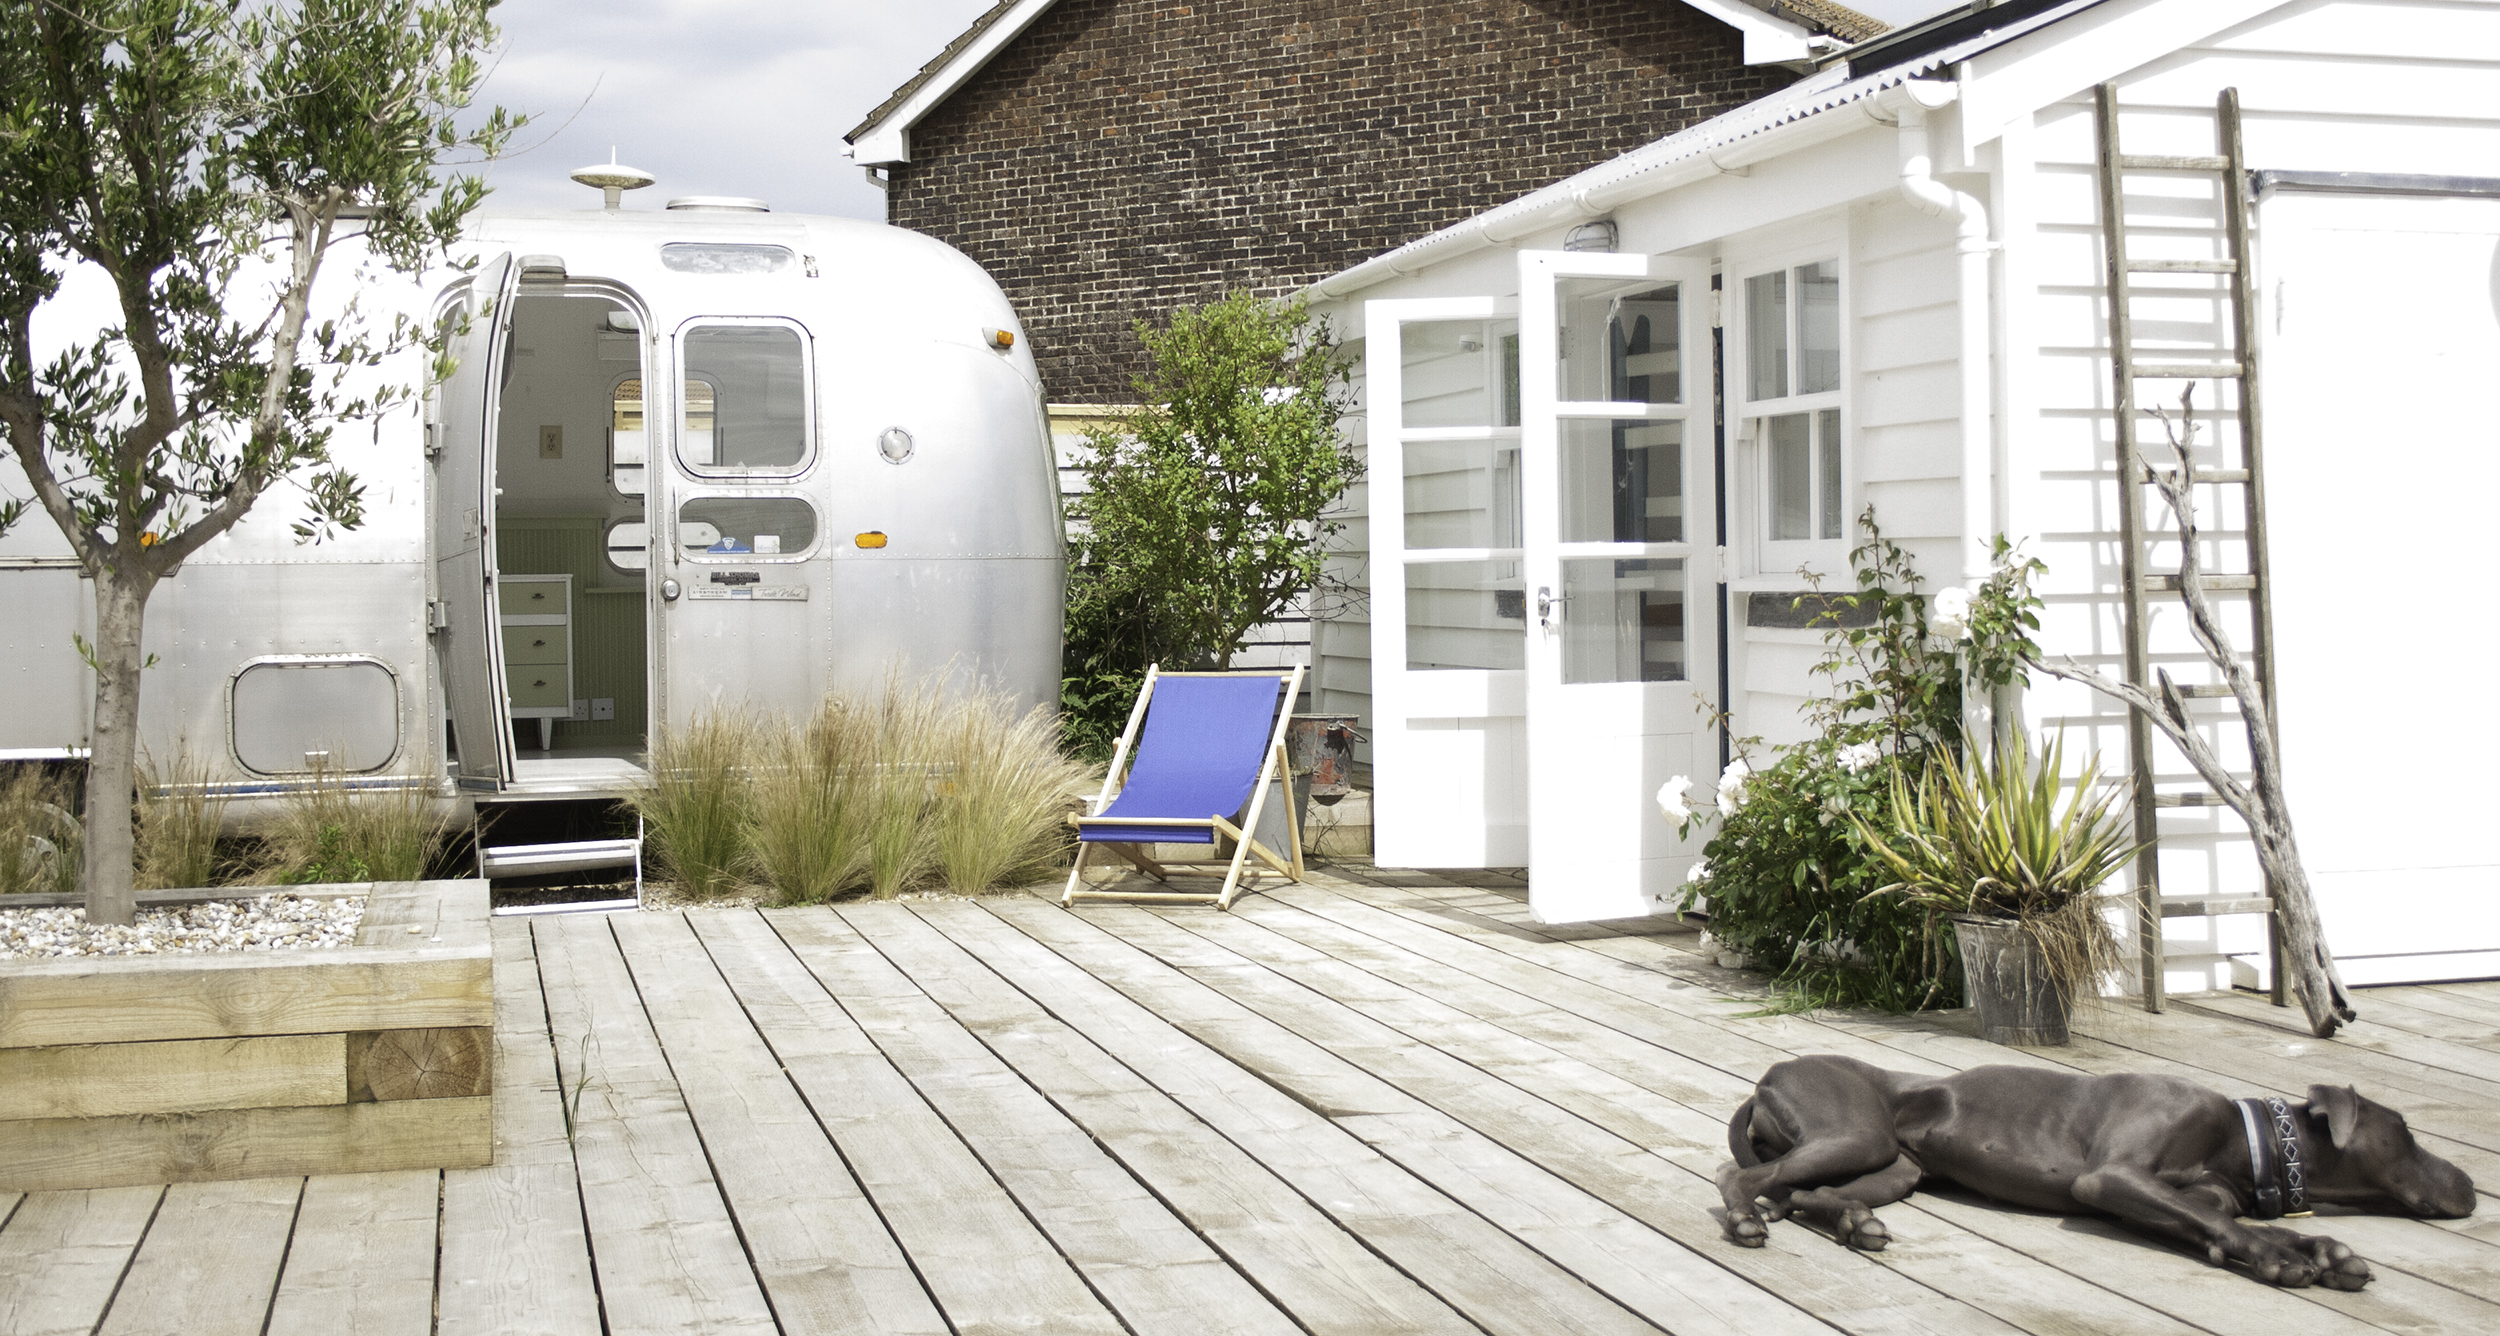 Airstream, Cabin and dog